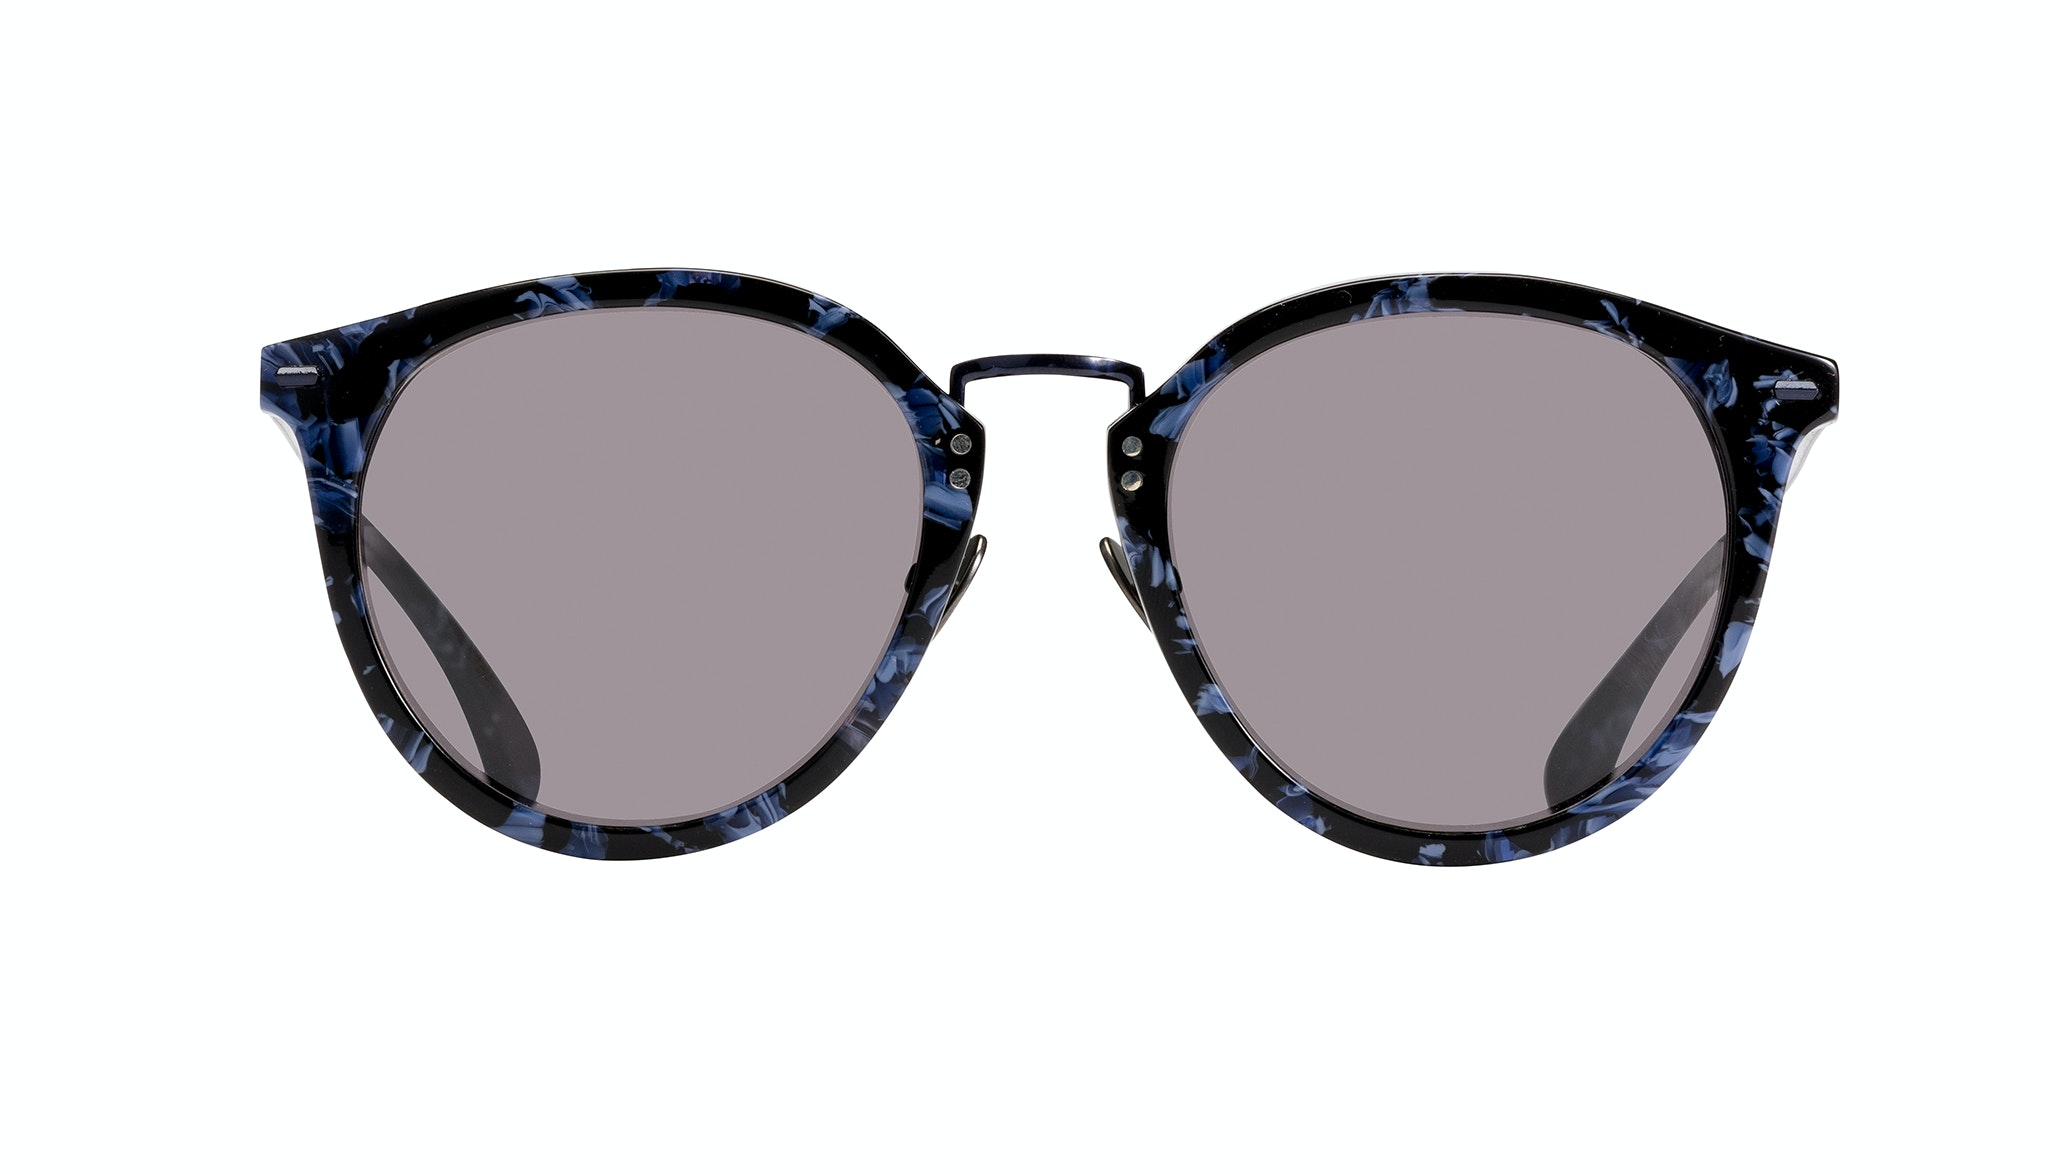 Affordable Fashion Glasses Round Sunglasses Women Poppy Rey Front